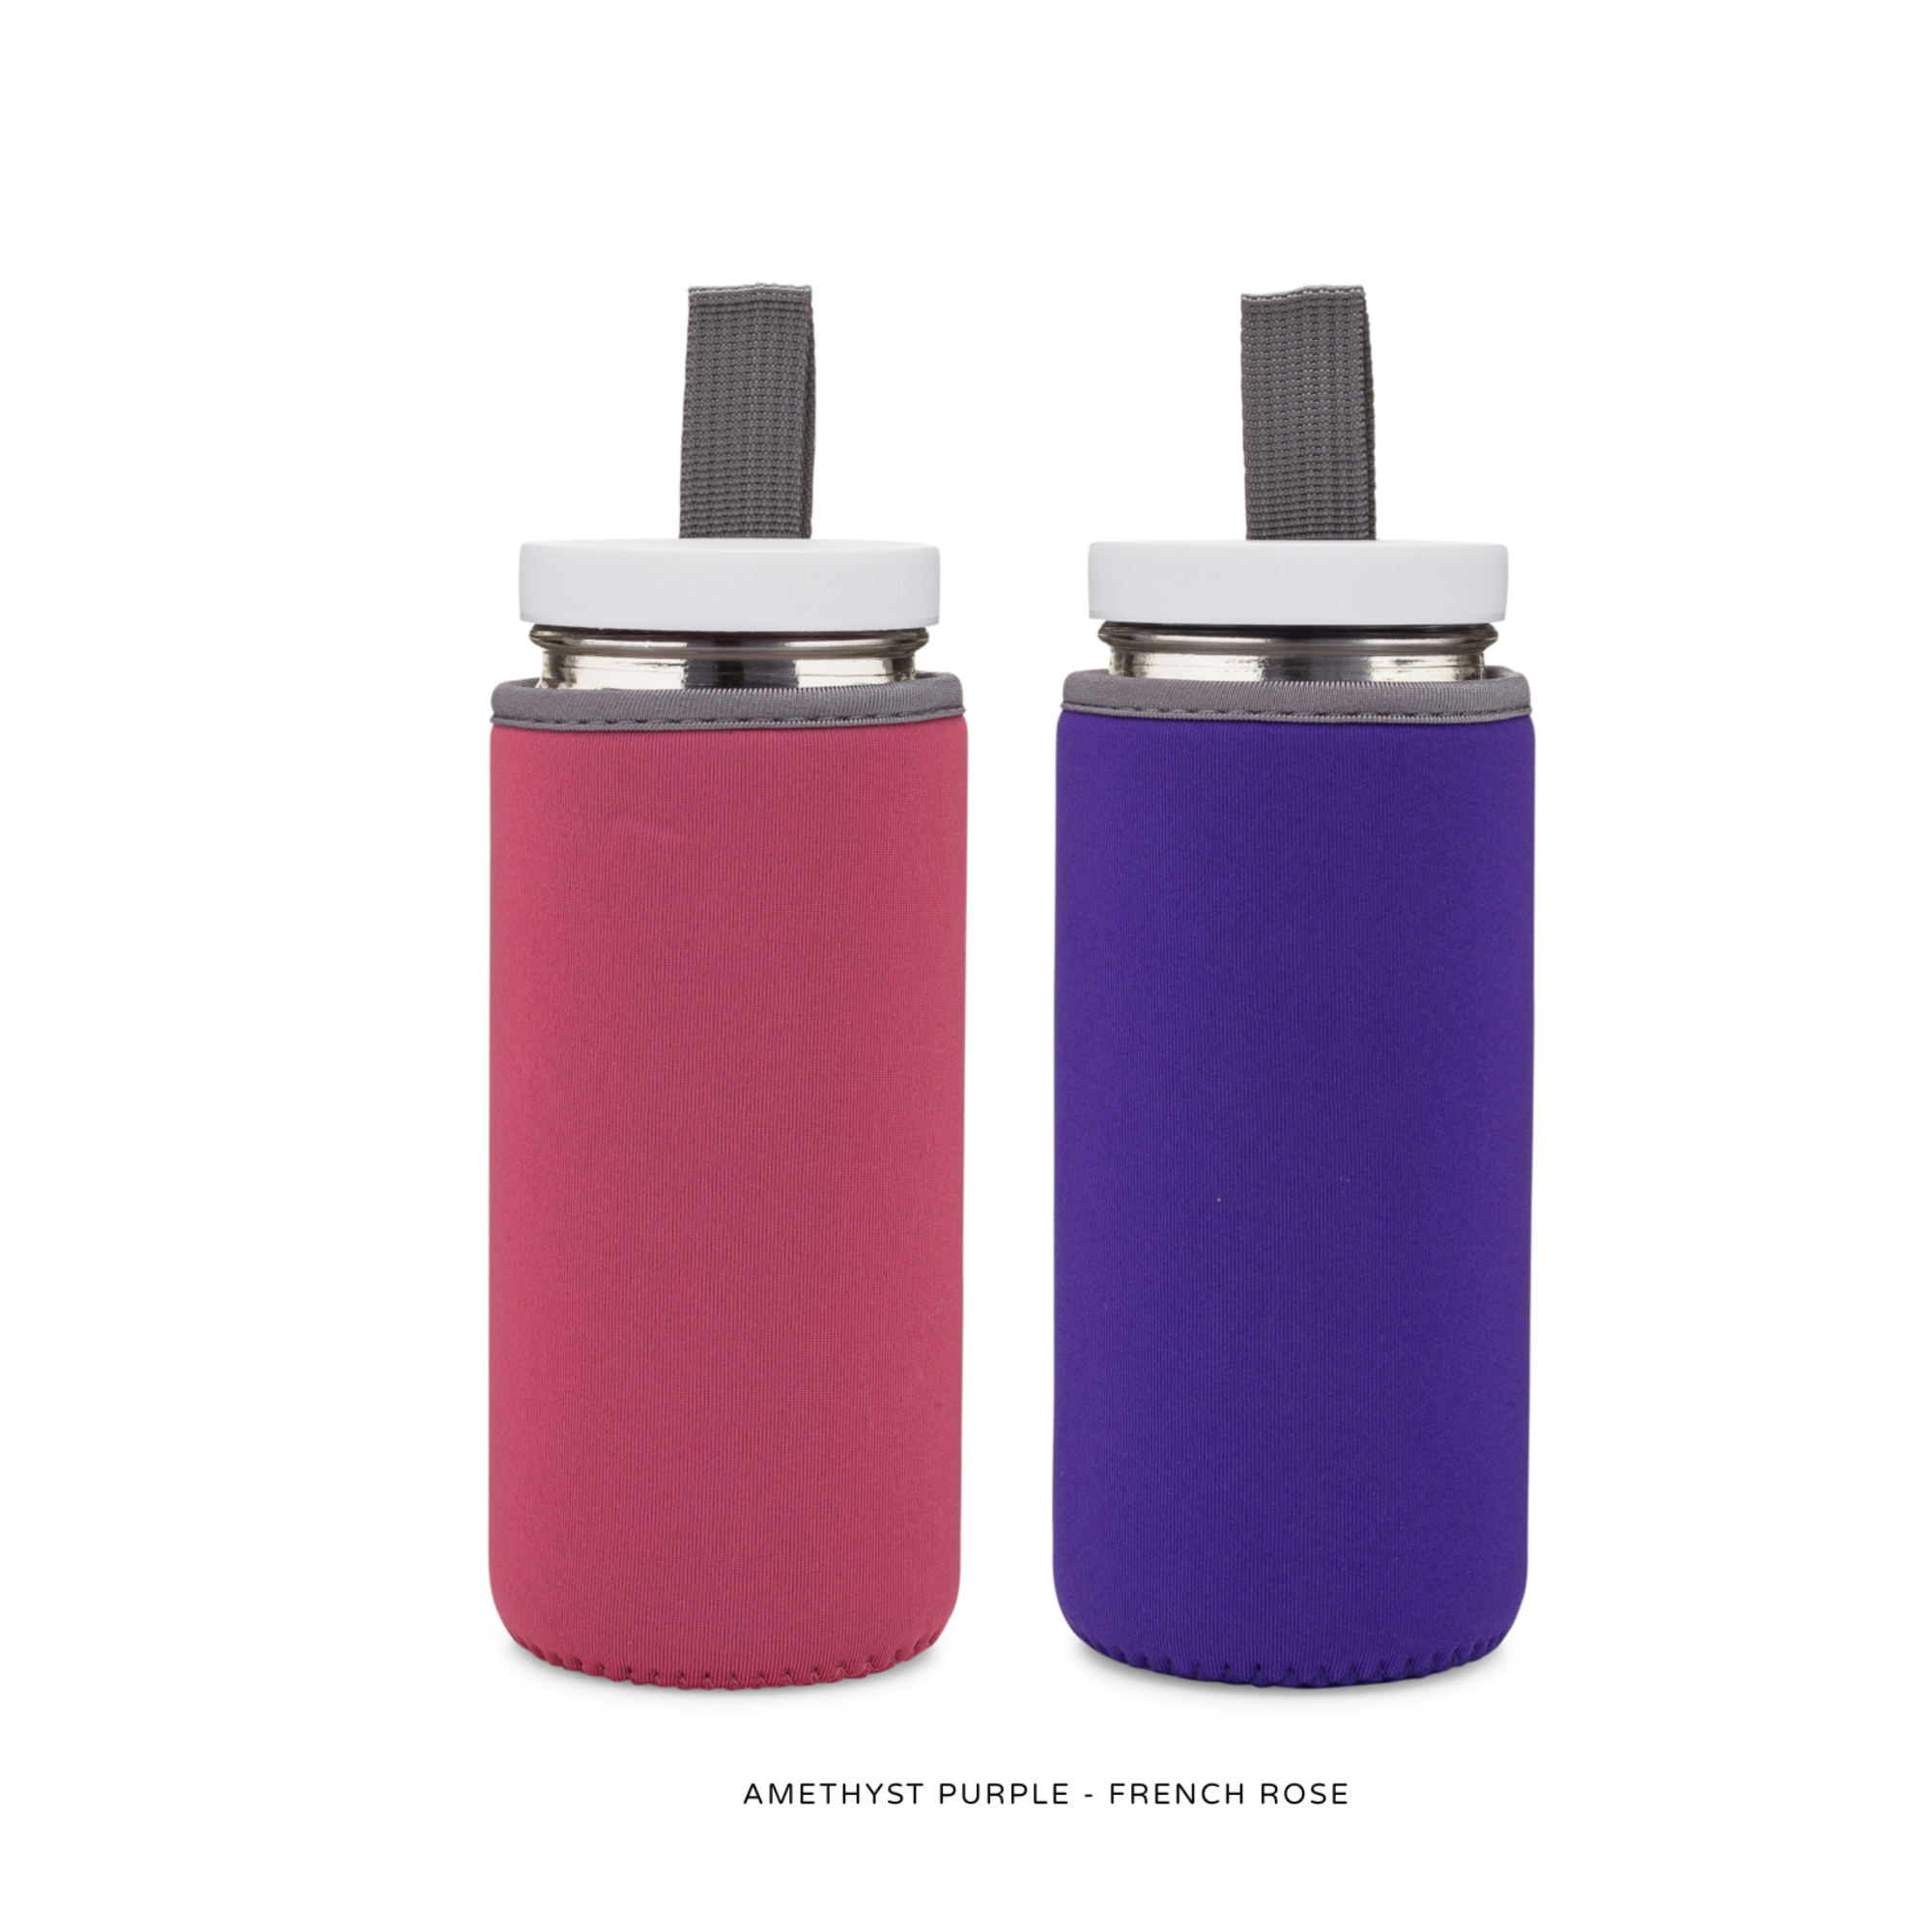 Reusable Glass Water Bottles with Neoprene Sleeves - 2 Pack - For Juice, Smoothies, Beverage Storage